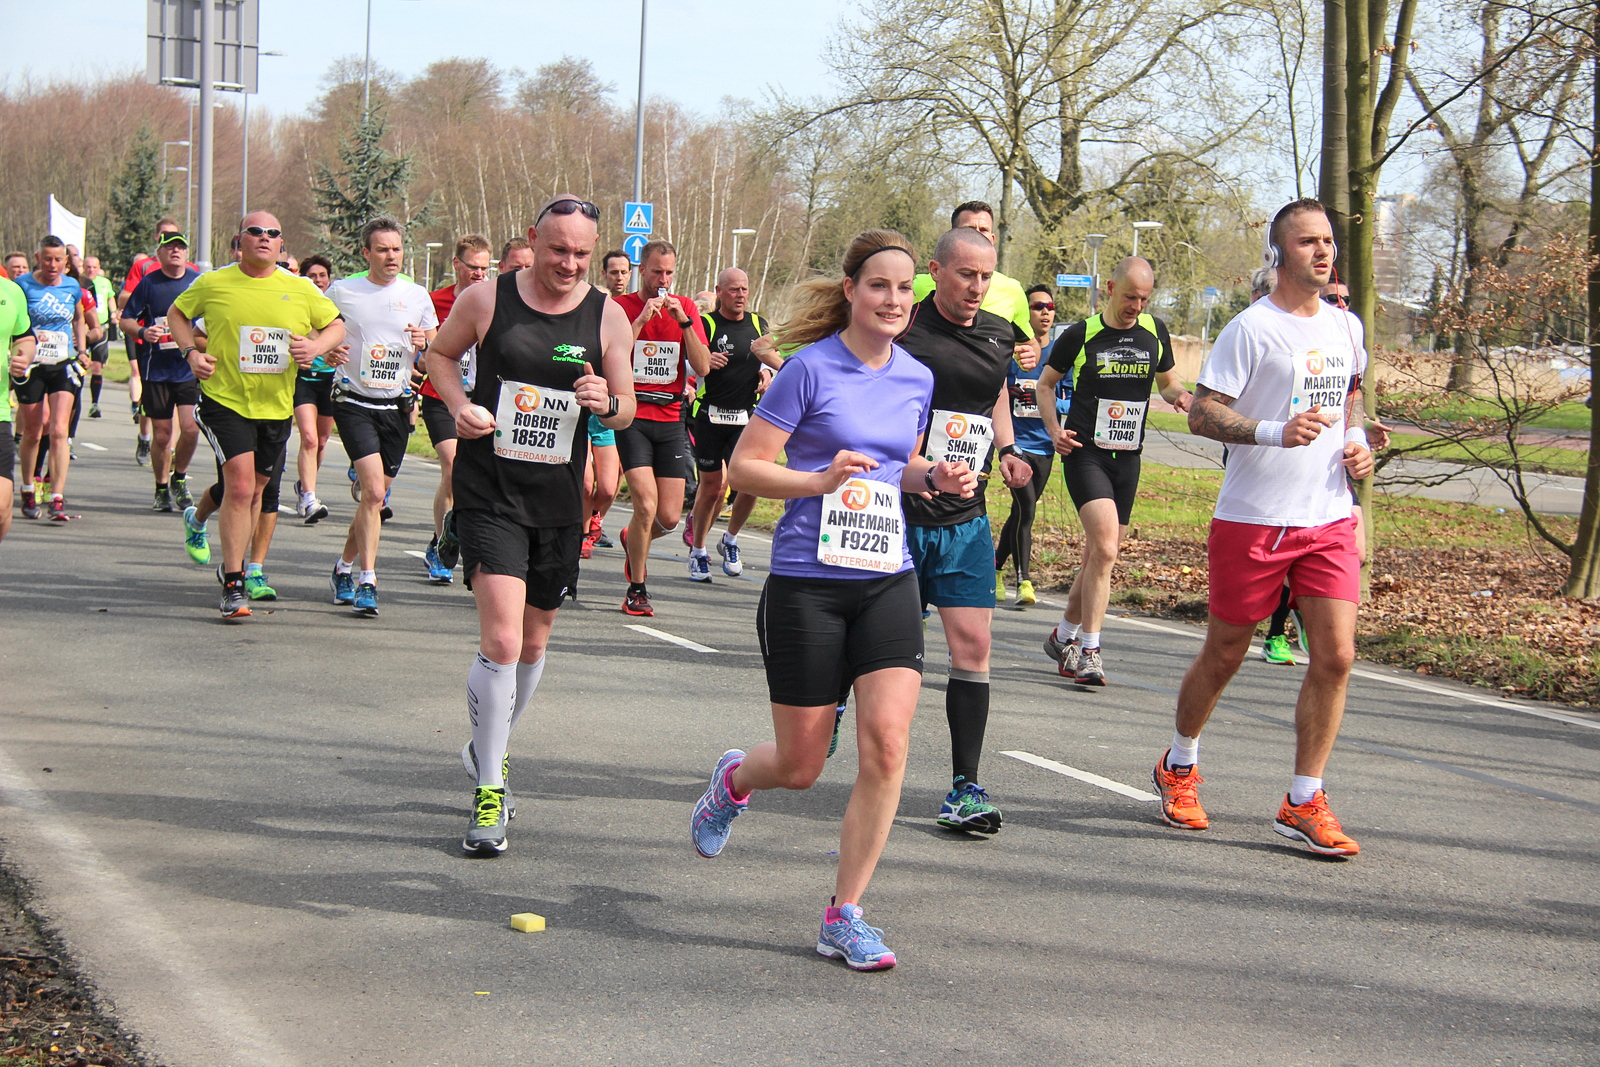 Large_group_runners_in_a_park_marathon_Rotterdam_2015